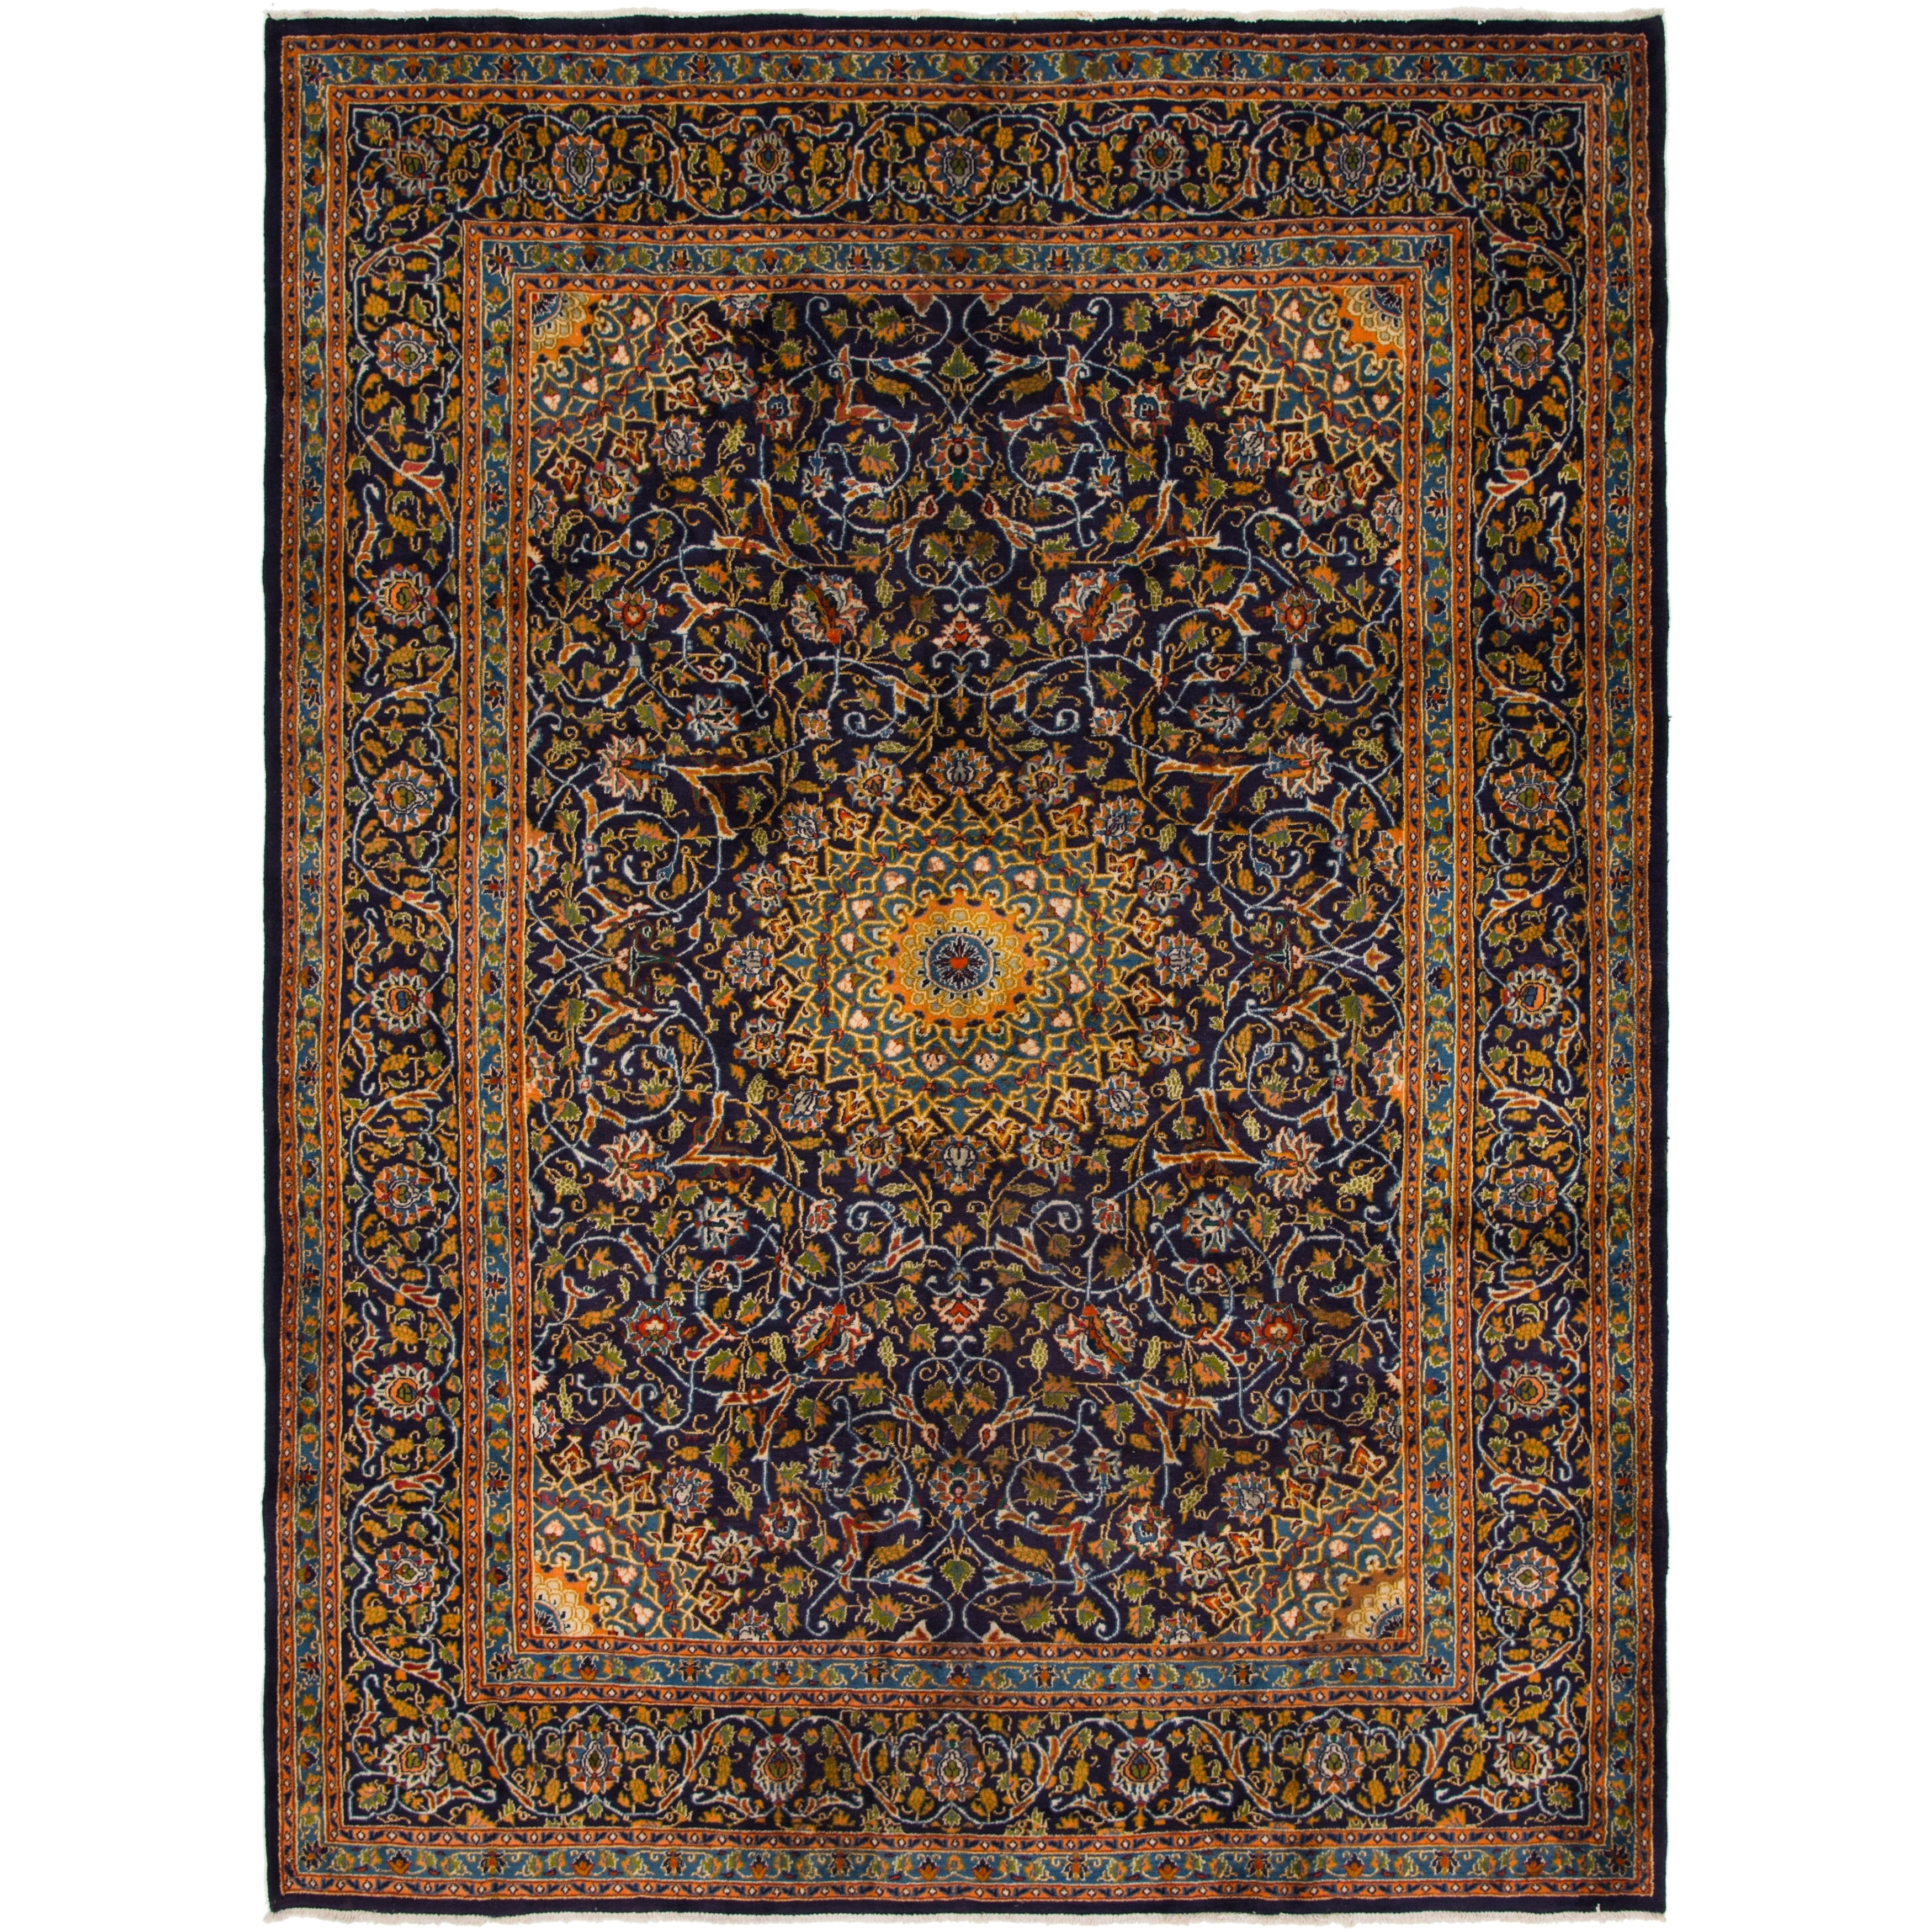 Hand Knotted Kashmar Semi Antique Wool Area Rug - 9 5 x 12 10 (Navy blue - 9 5 x 12 10)